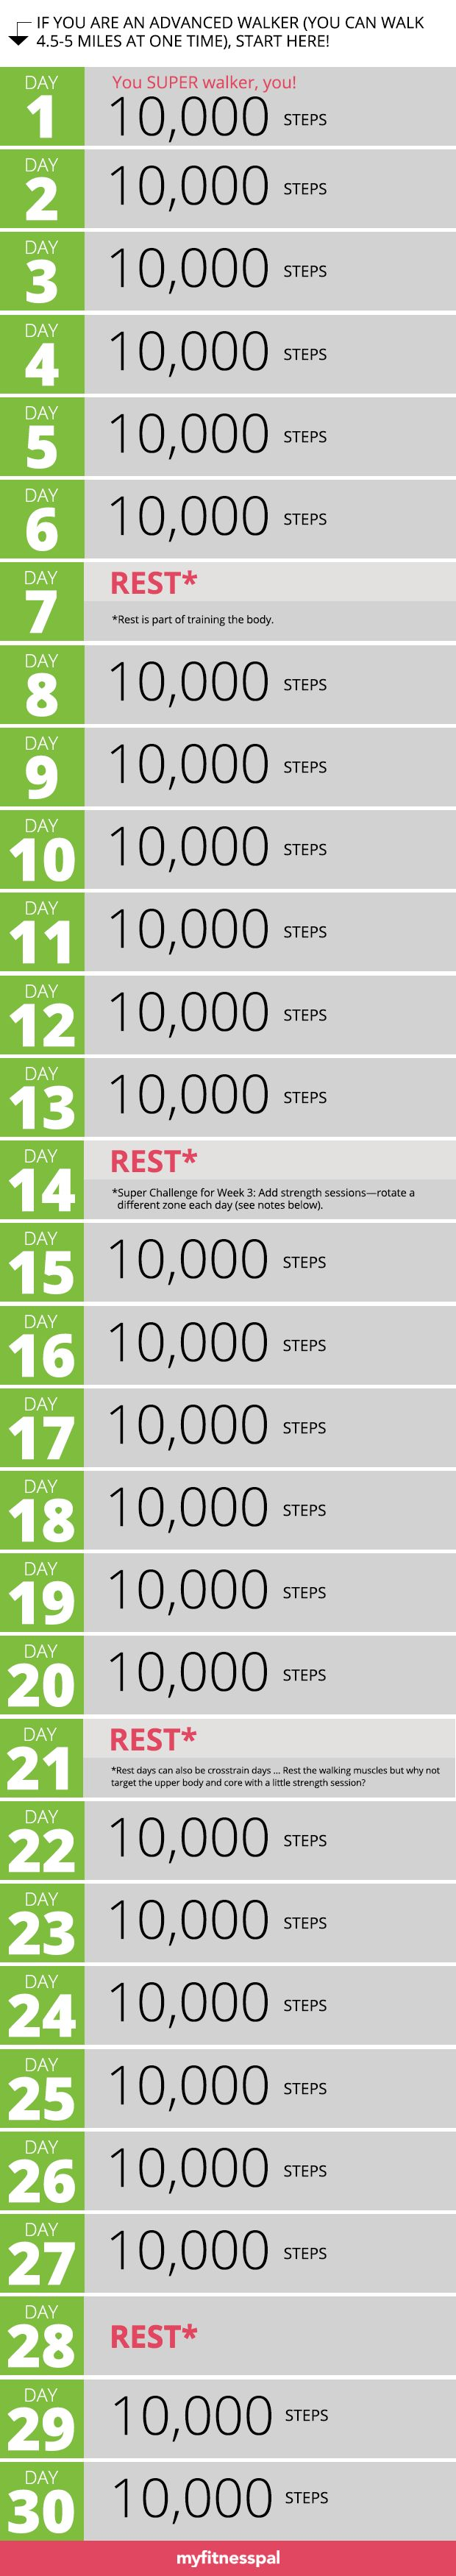 So going to start this plan this week.  Been trying to get my 10k steps per day and think this wimotivate me to just do it